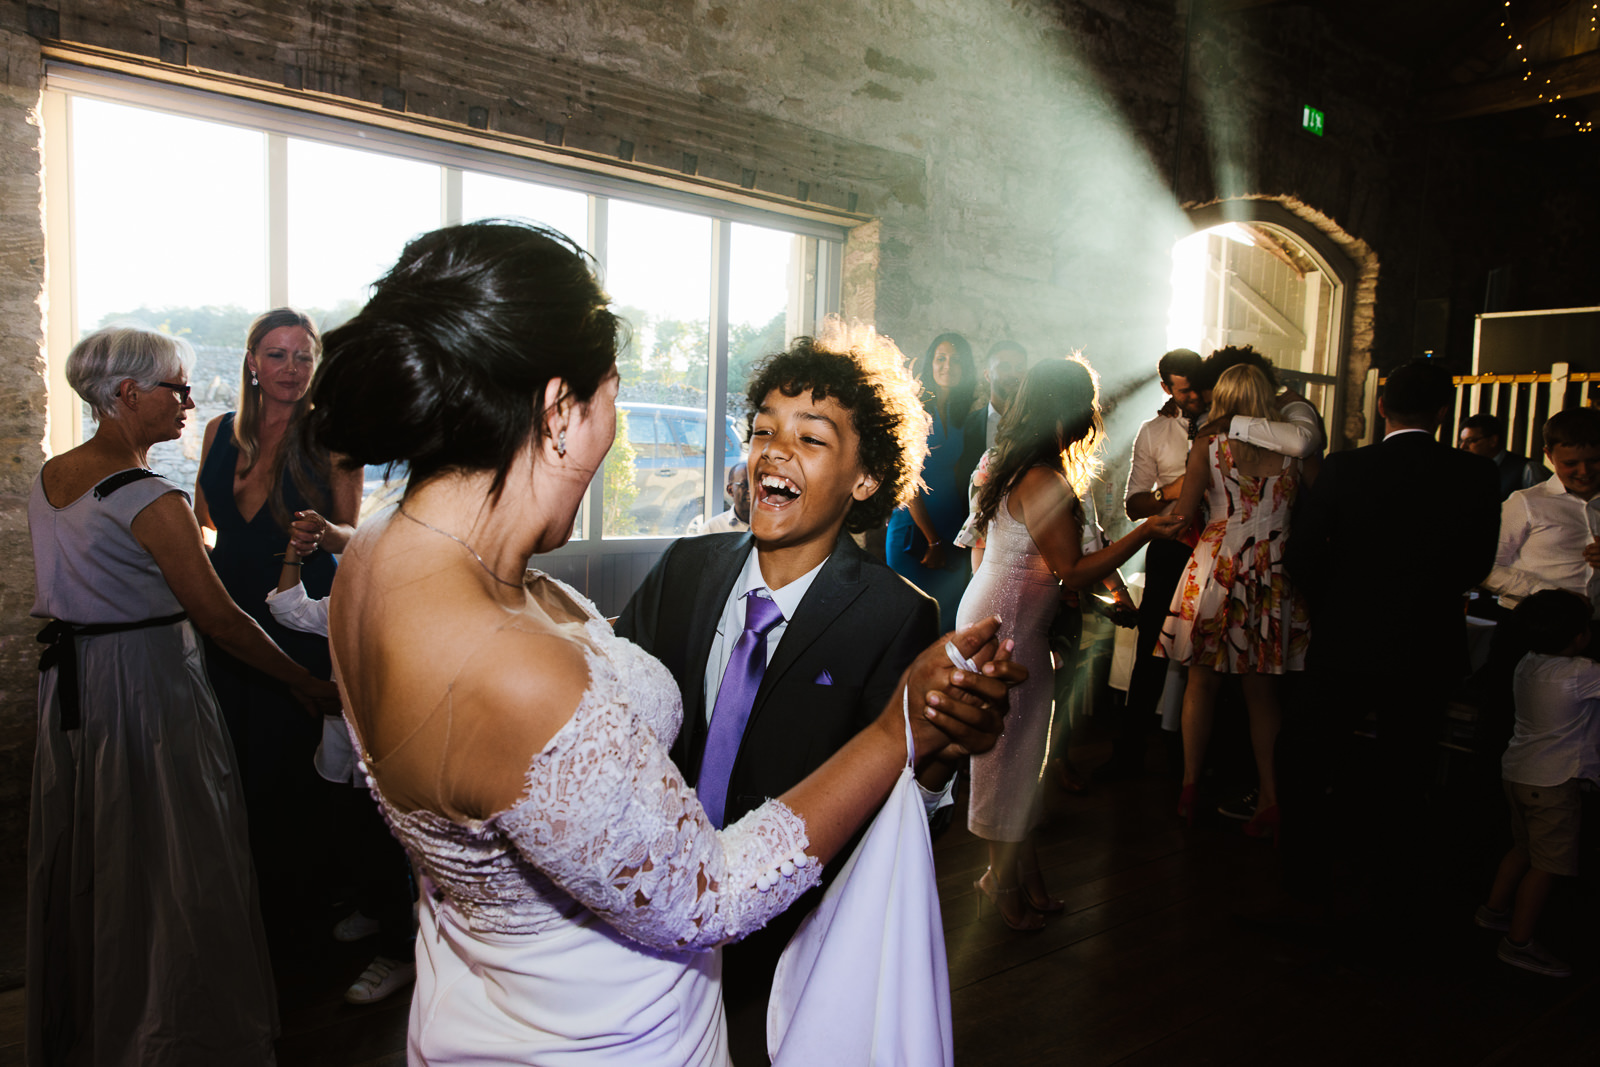 Bride and her boy dancing together